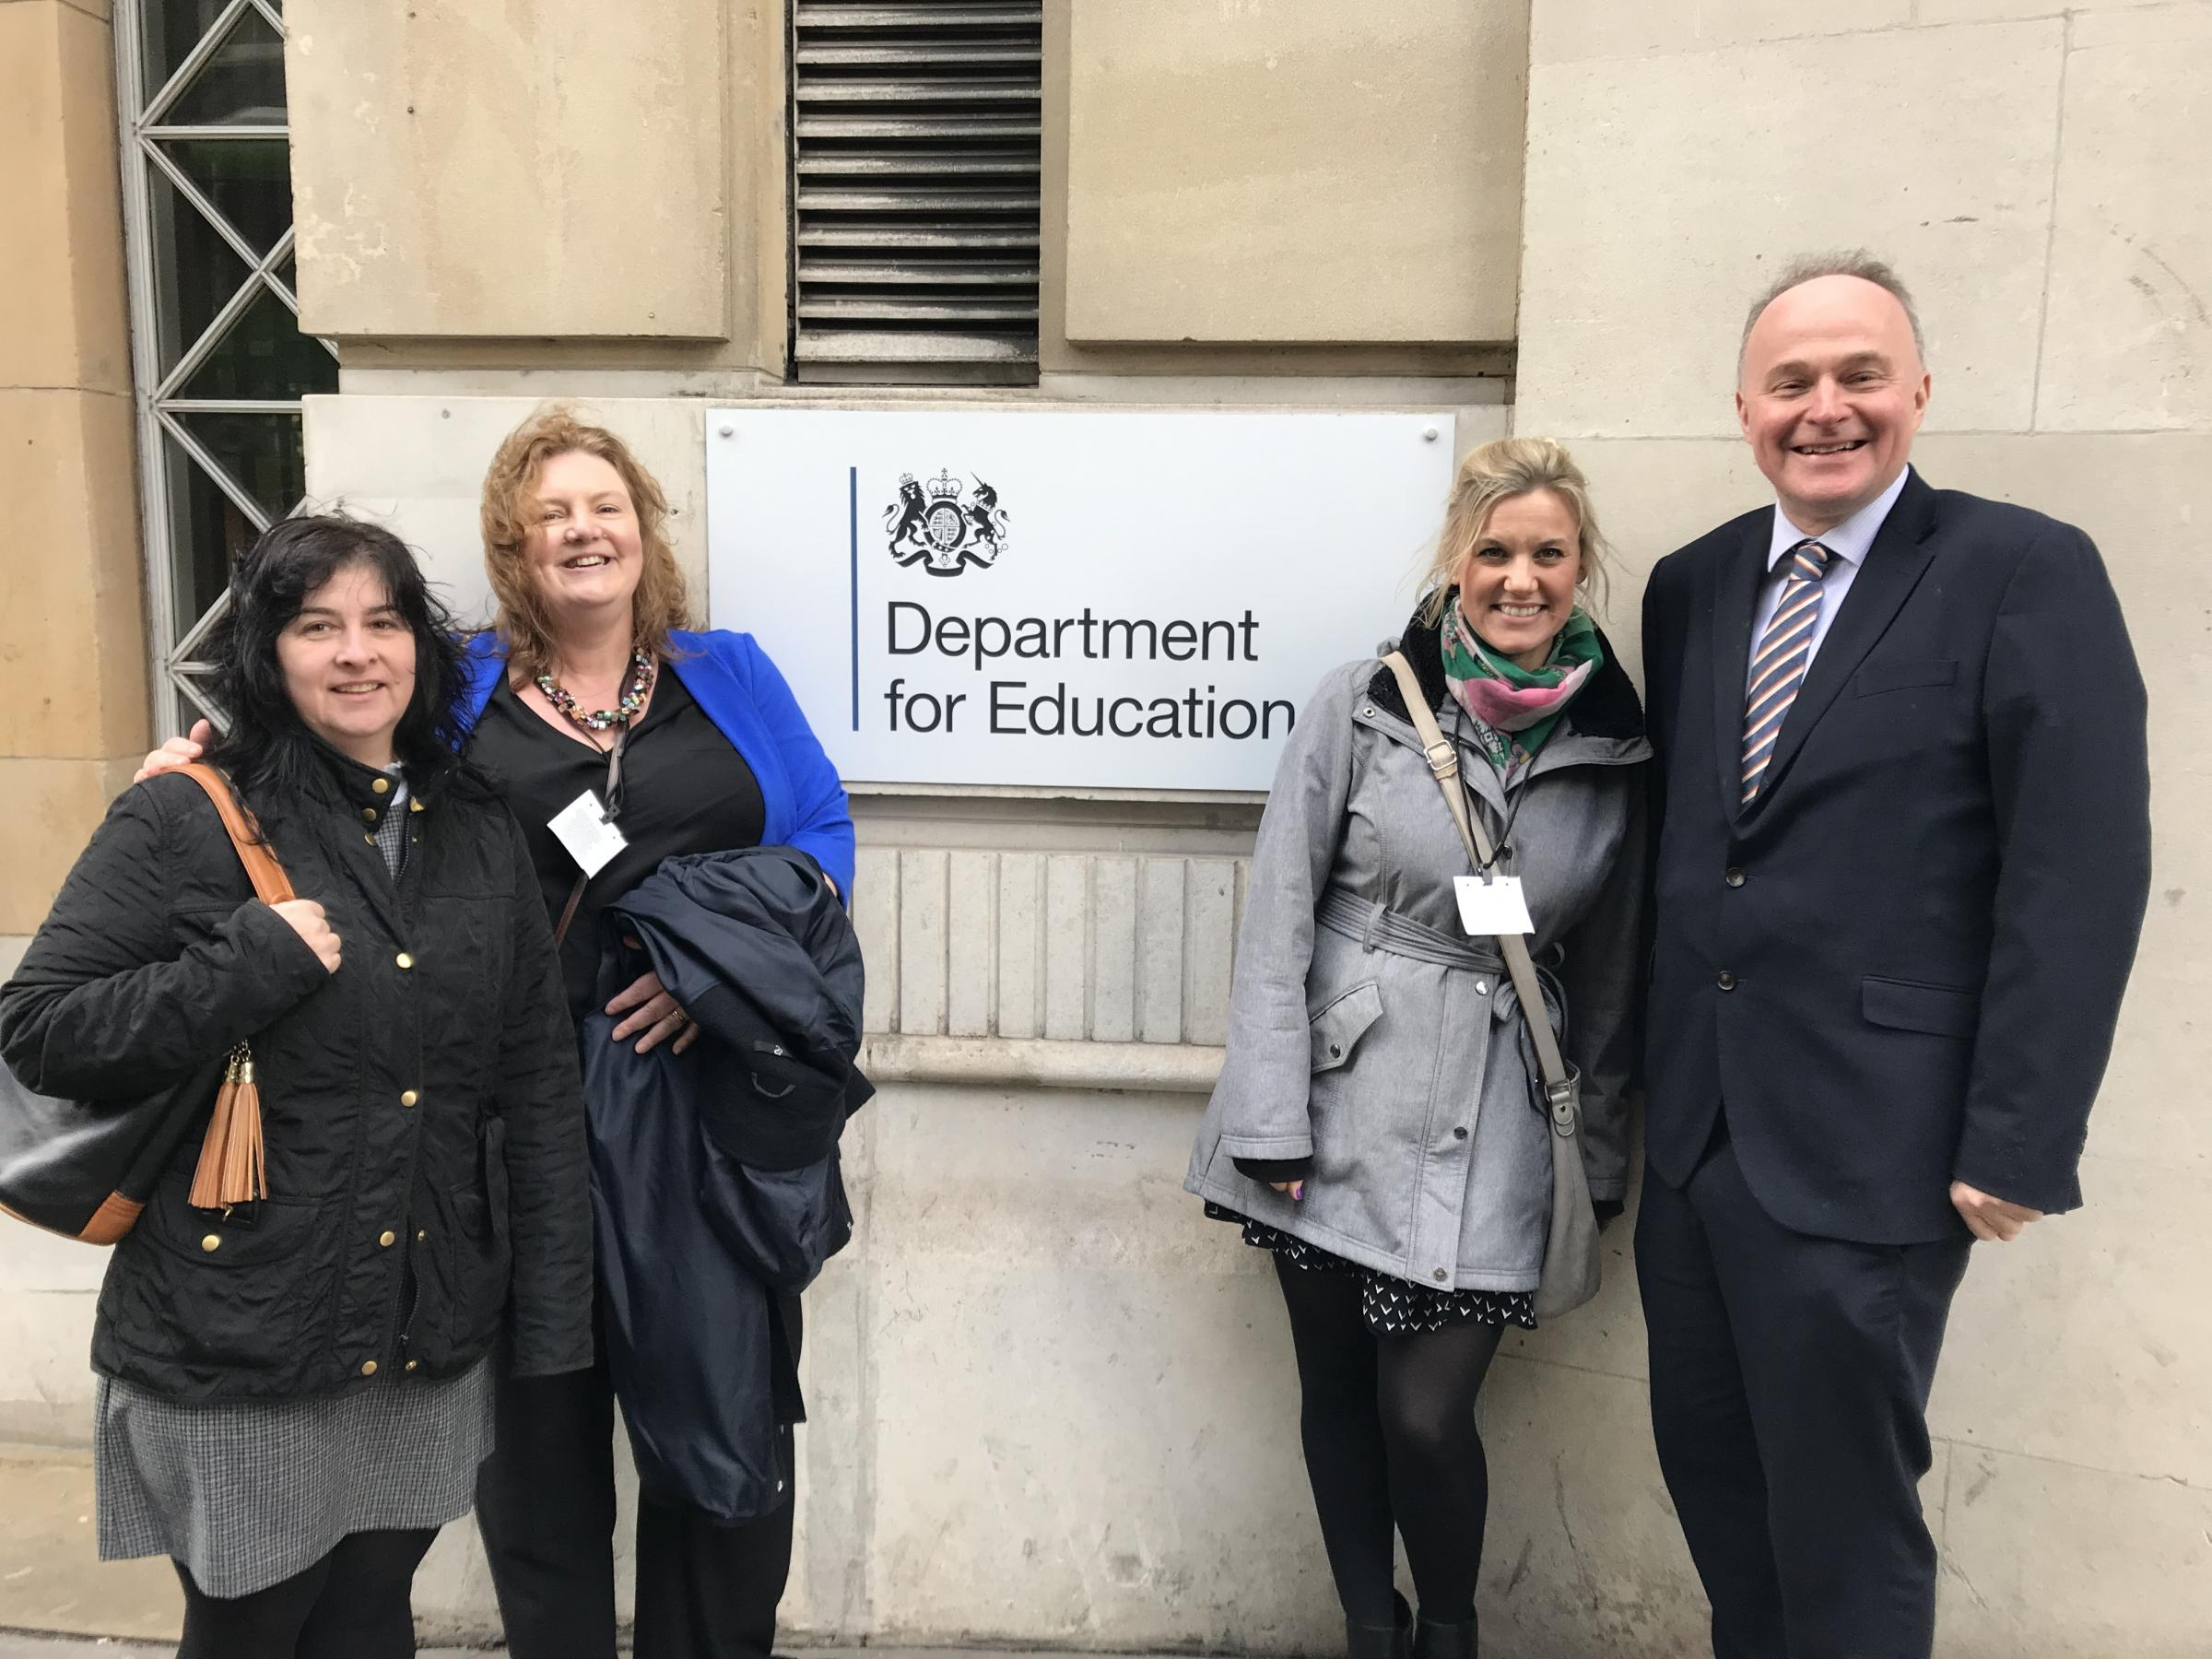 MP John Grogan outside the Department for Education with, from left, chairman of the governors Pam Freeman, executive headteacher Angela Vinnicombe and parent governor Hannah Fuller